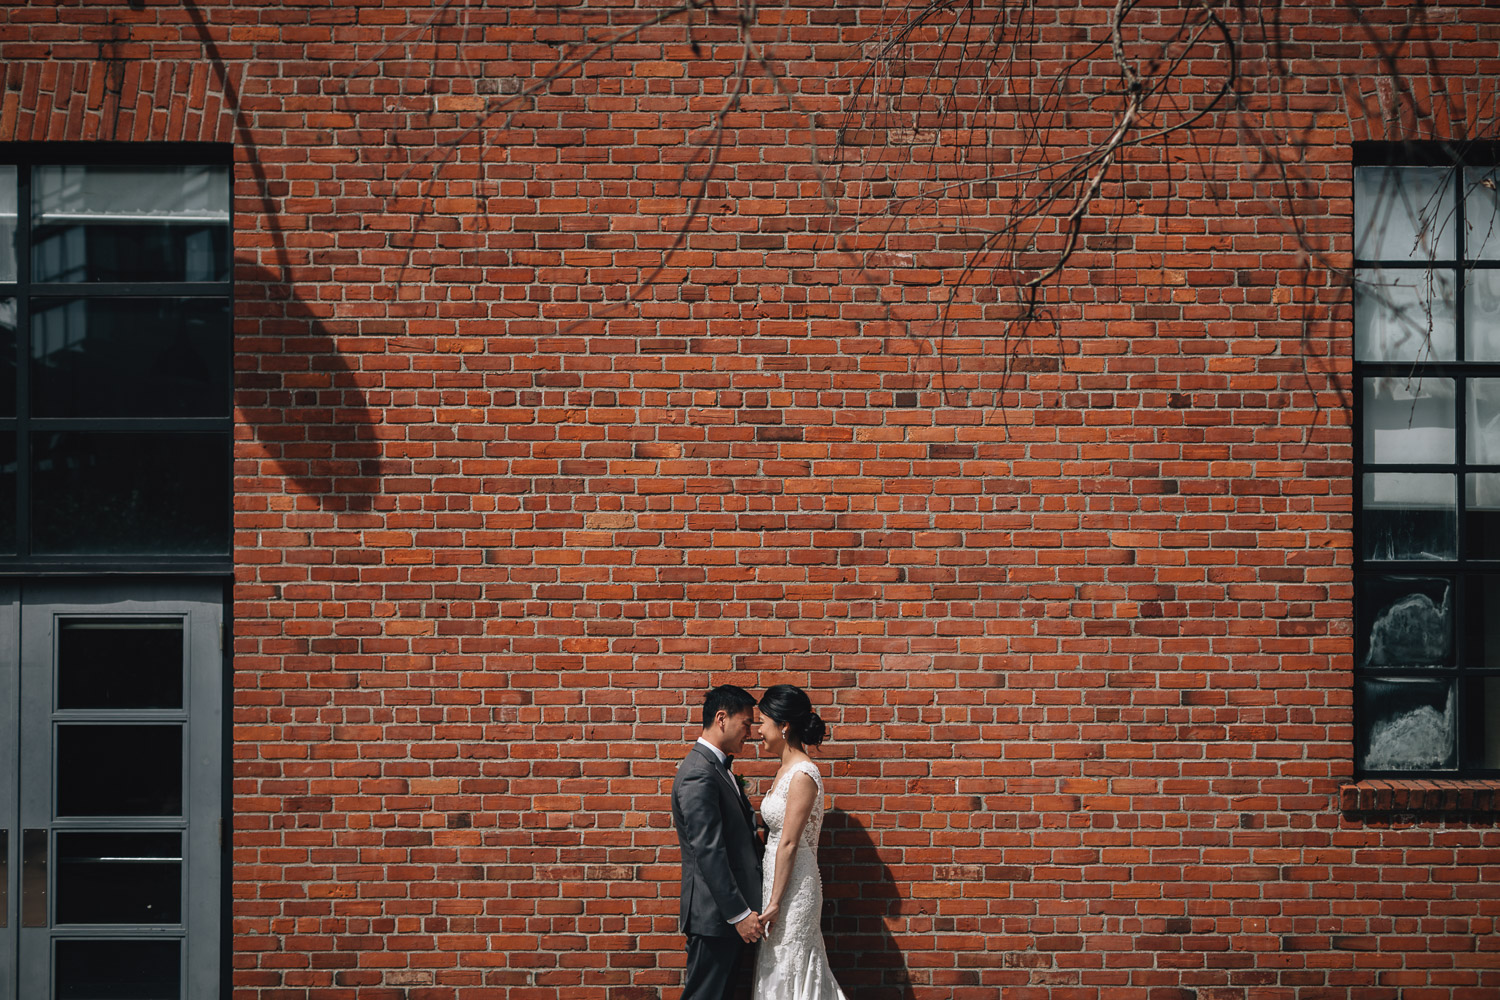 wedding portraits of bride and groom against brick wall in yaletown roundhouse vancouver bc